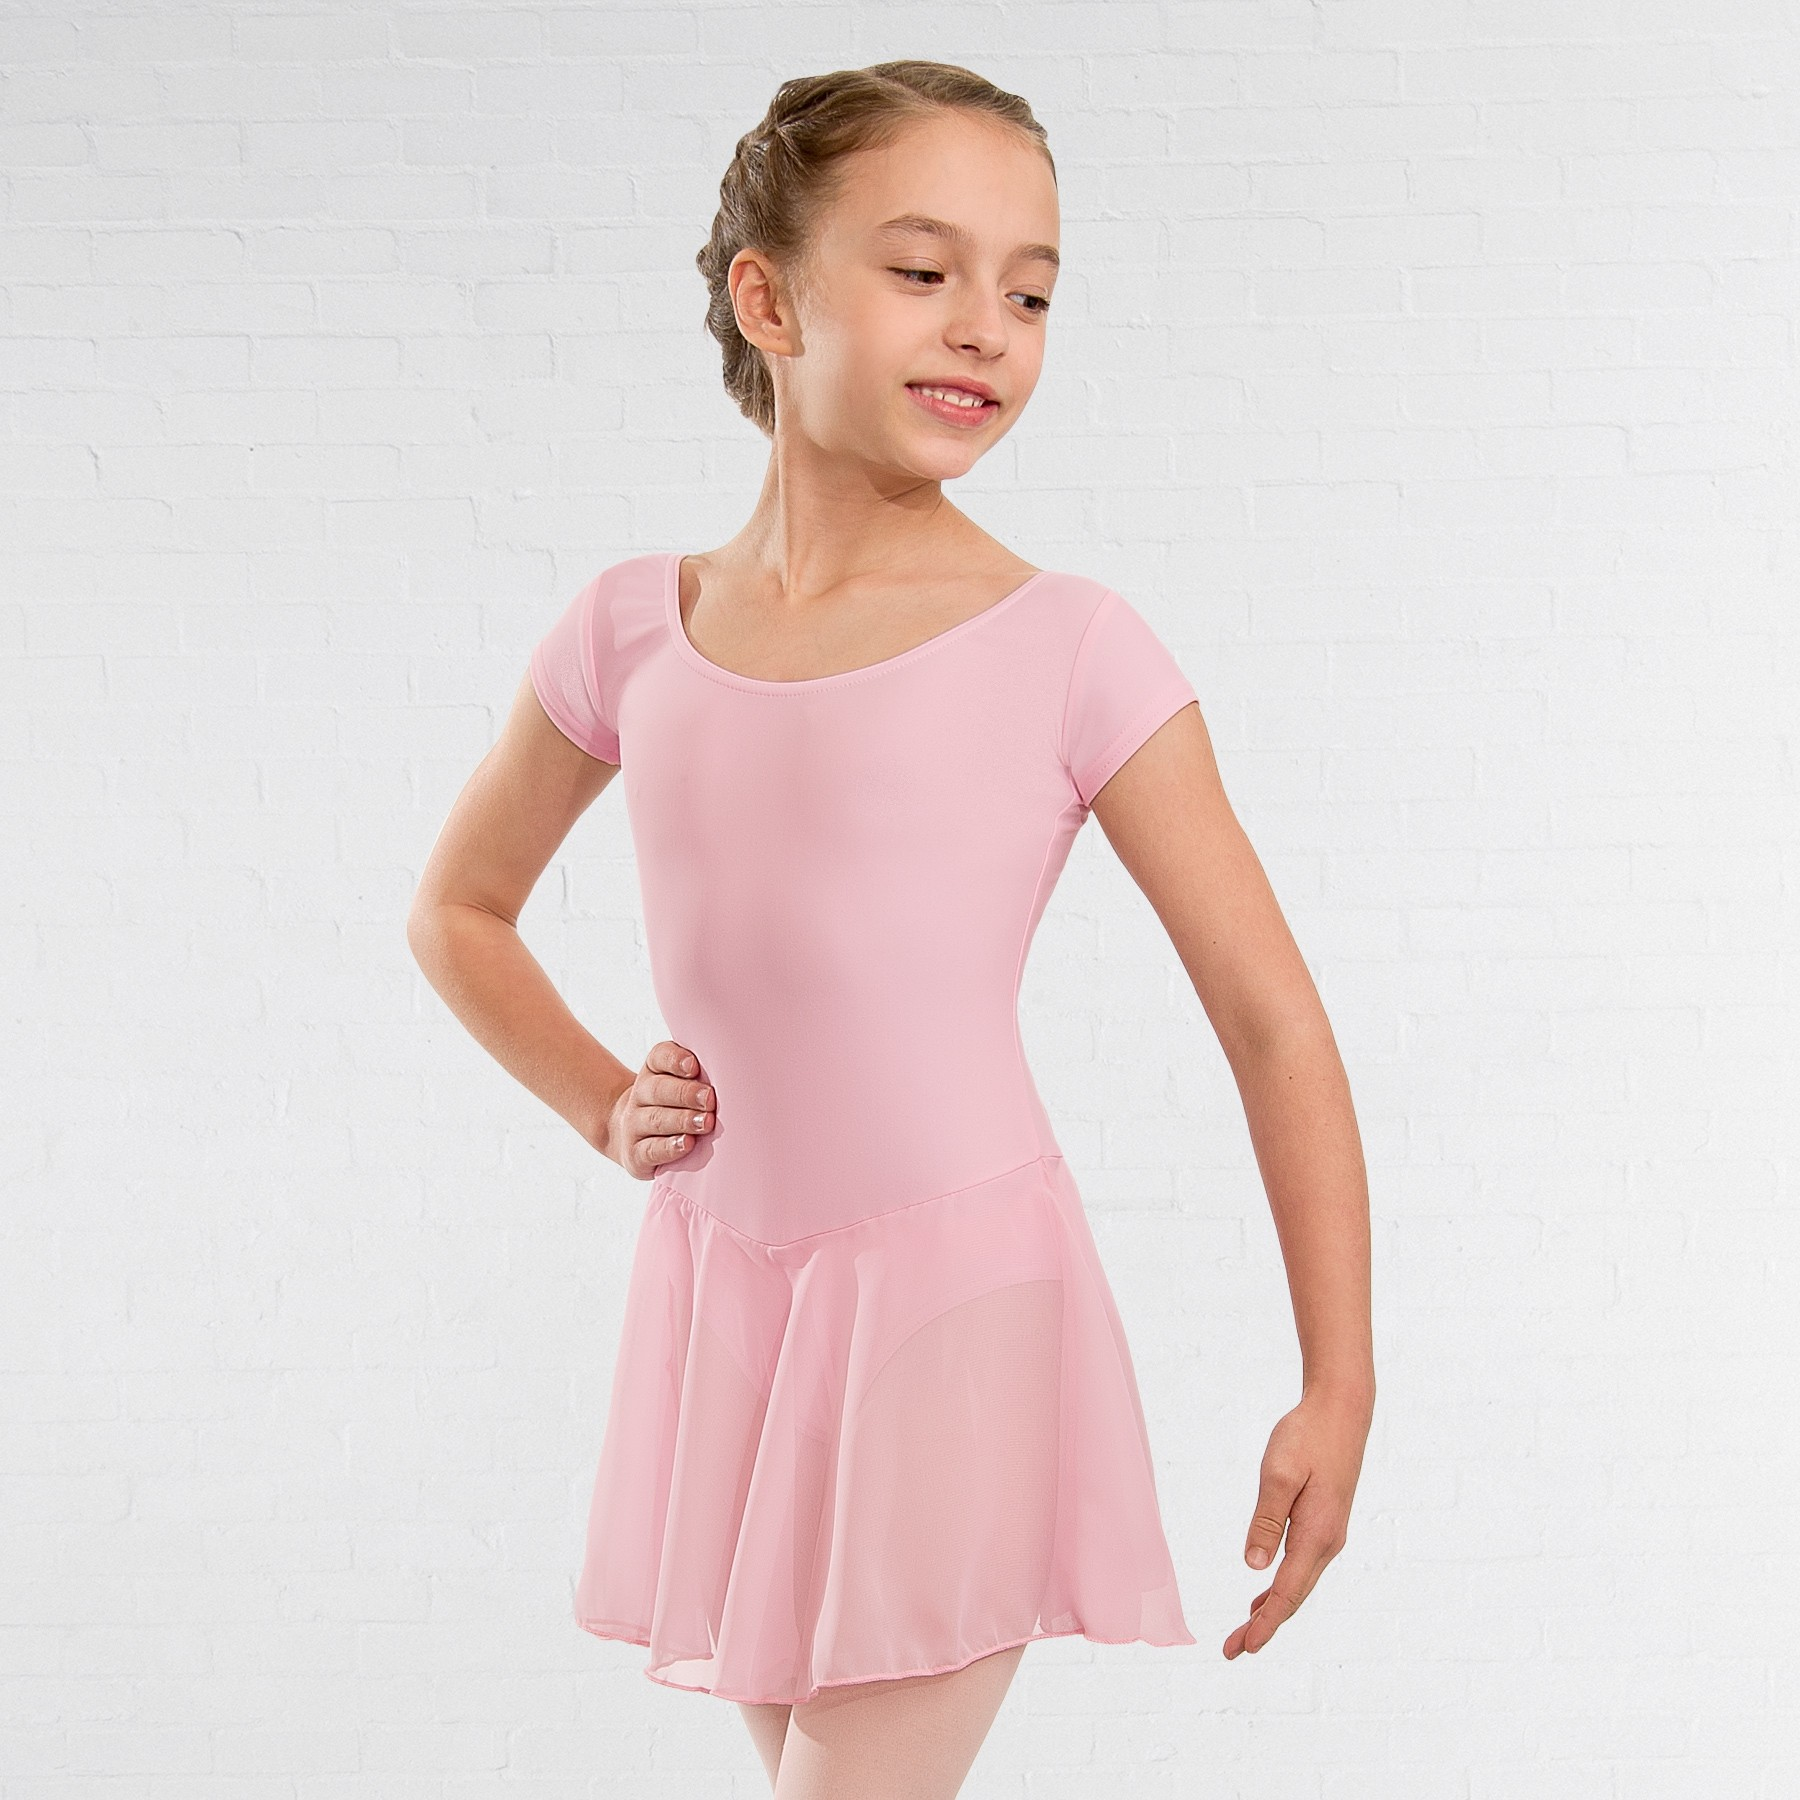 1st Position Milly Voile Skirted Cap Sleeve Leotard (Light Pink)